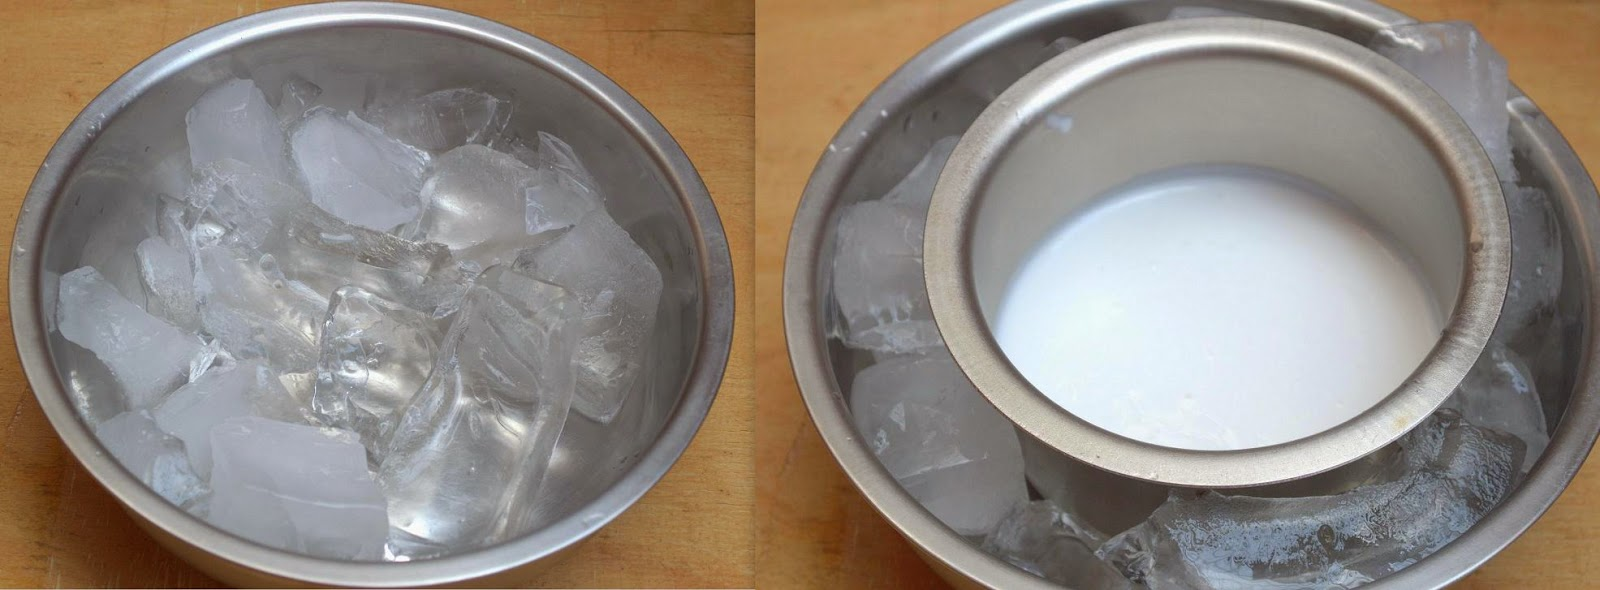 how to make non dairy whipped cream at home